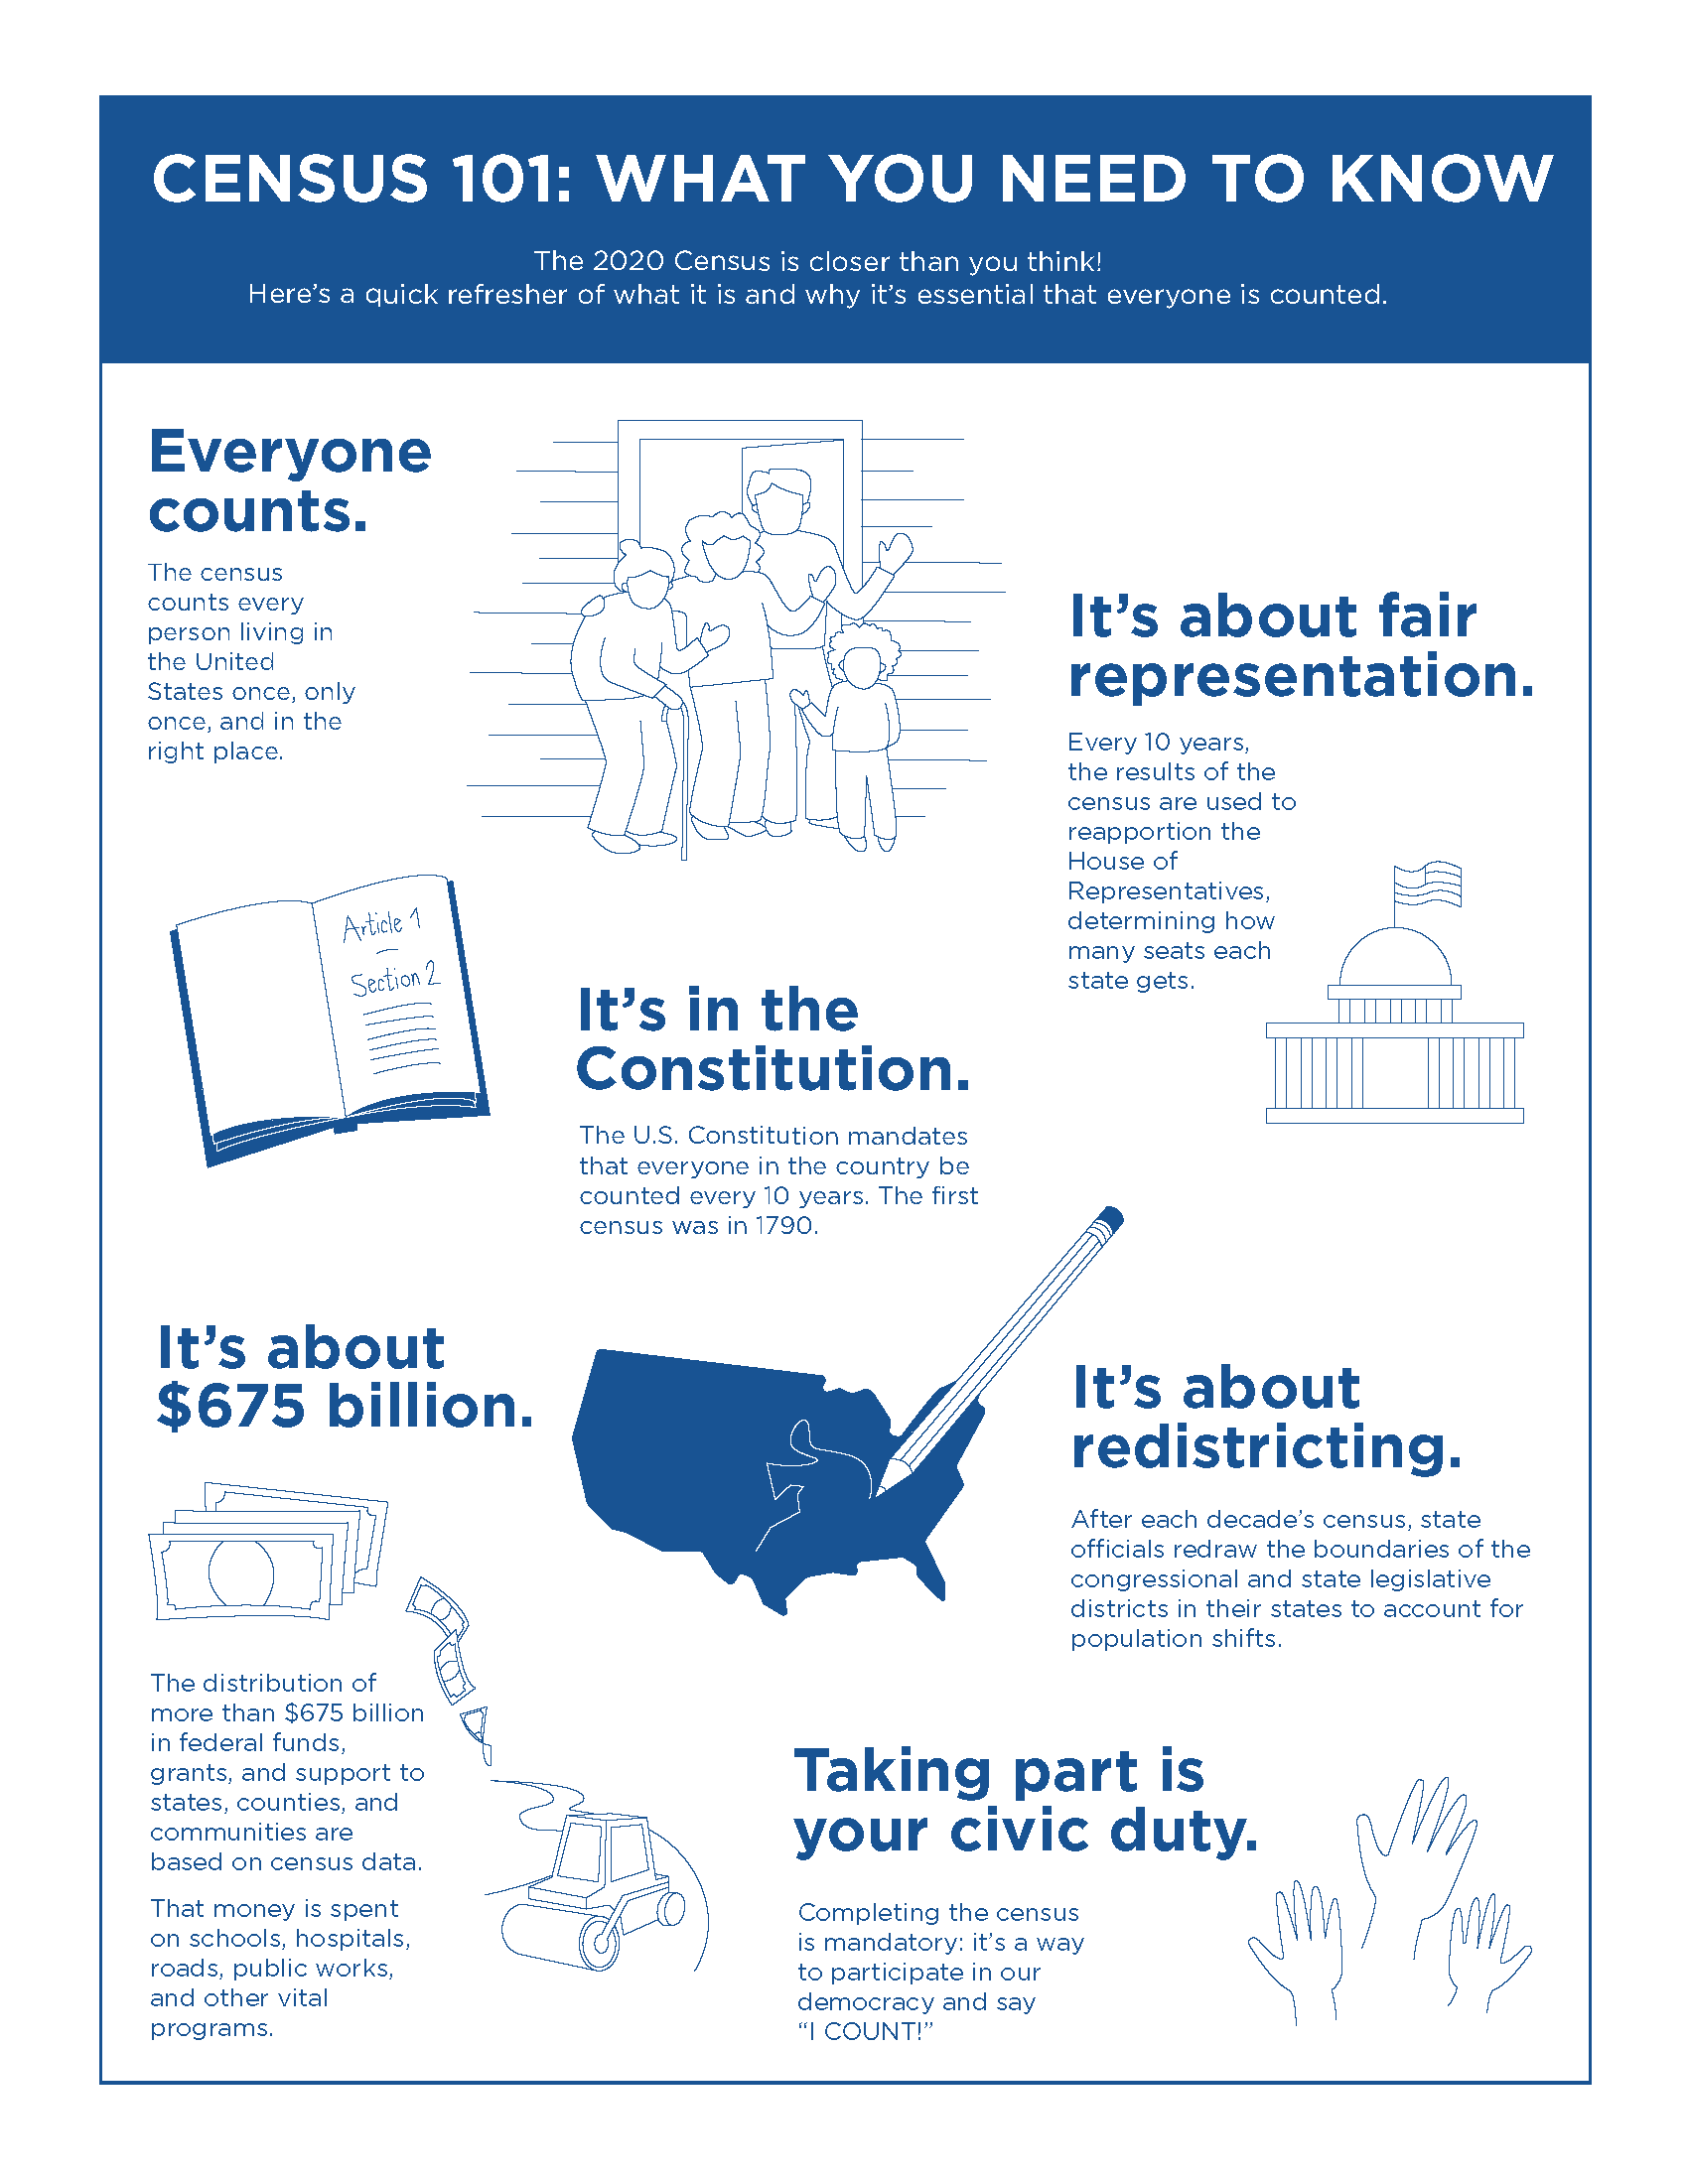 census101 infographic